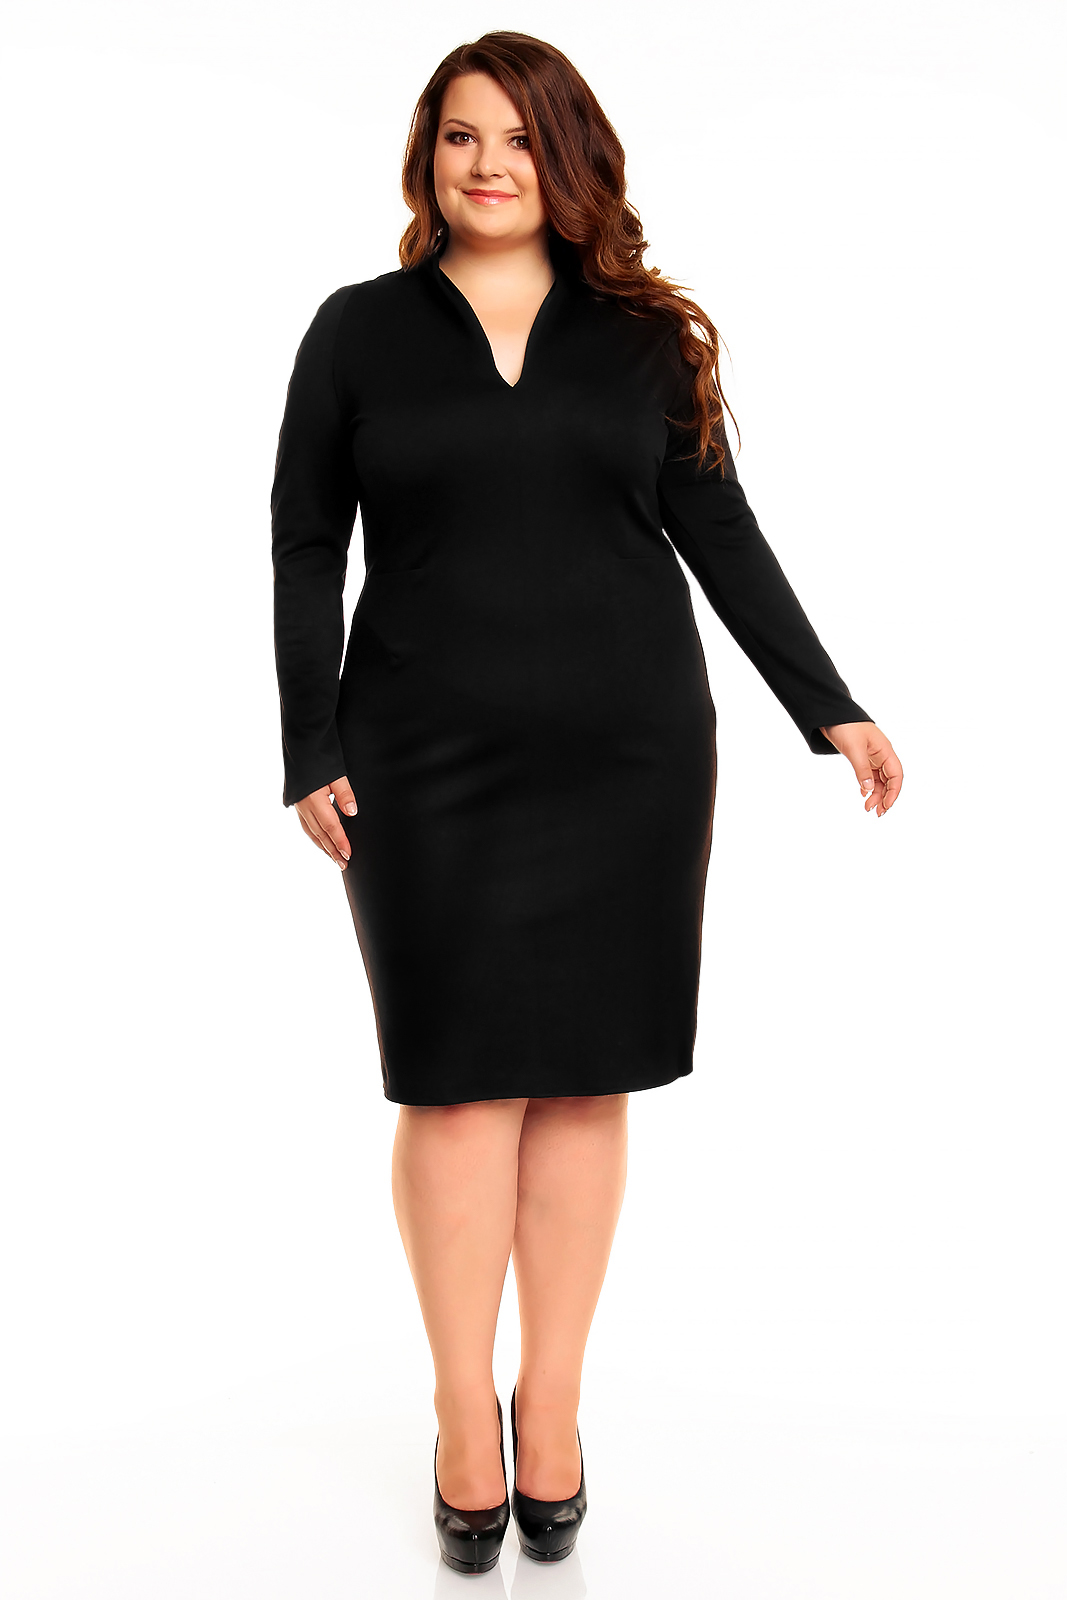 Whether it's jeans, skirts or dress pants, shop plus-size clothing that fits. Fill your wardrobe with items you'll be excited to wear. Women's plus size clothing should feel good on your body and look great, too.